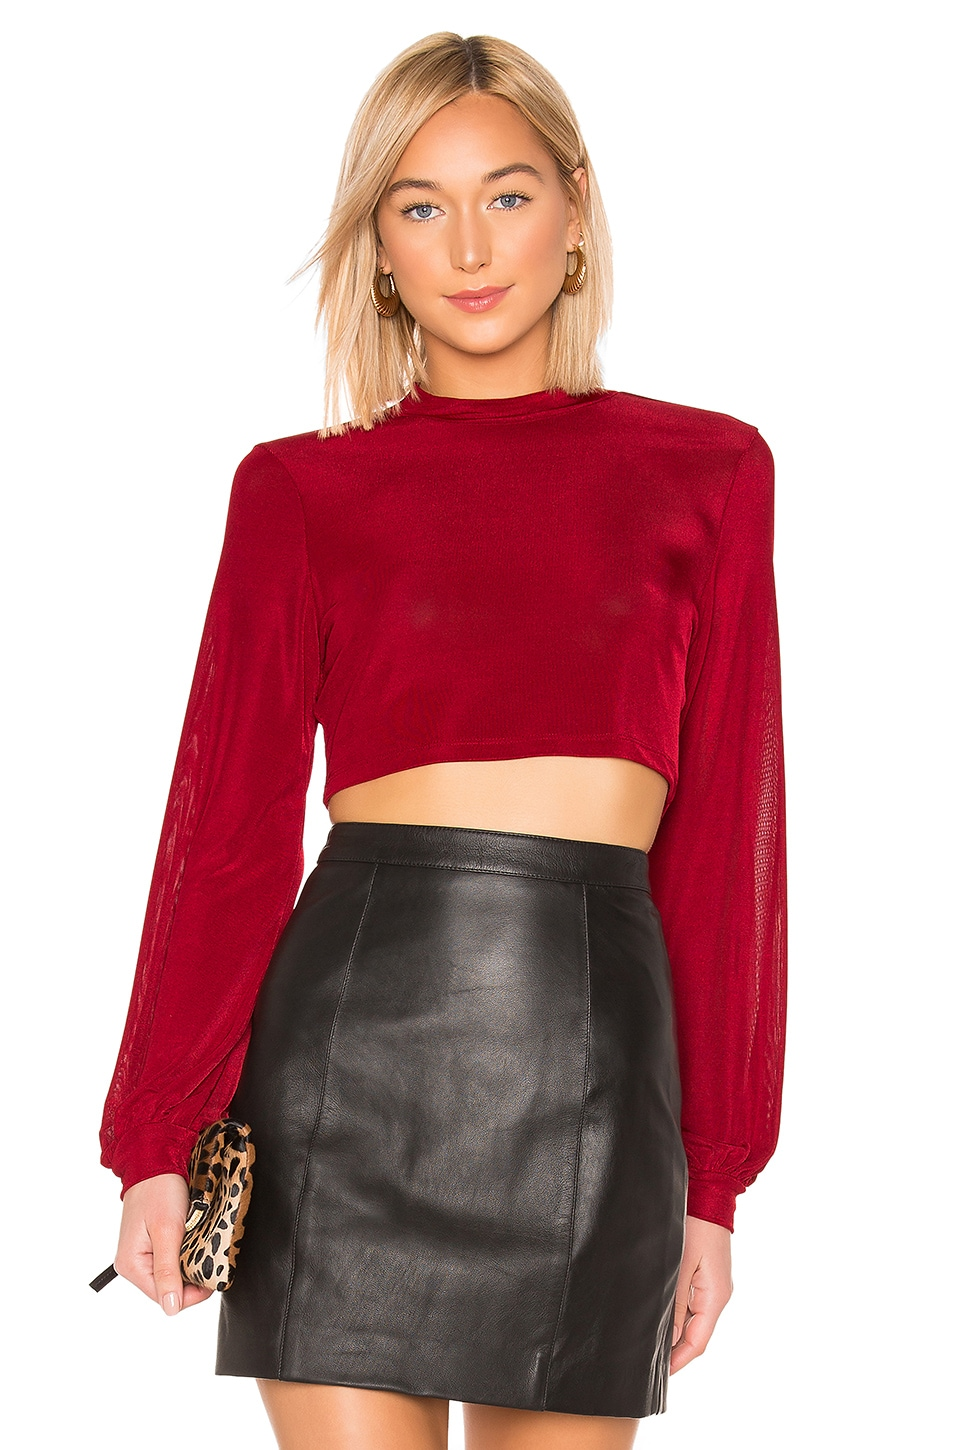 L'Academie The Marcia Top in Persian Red